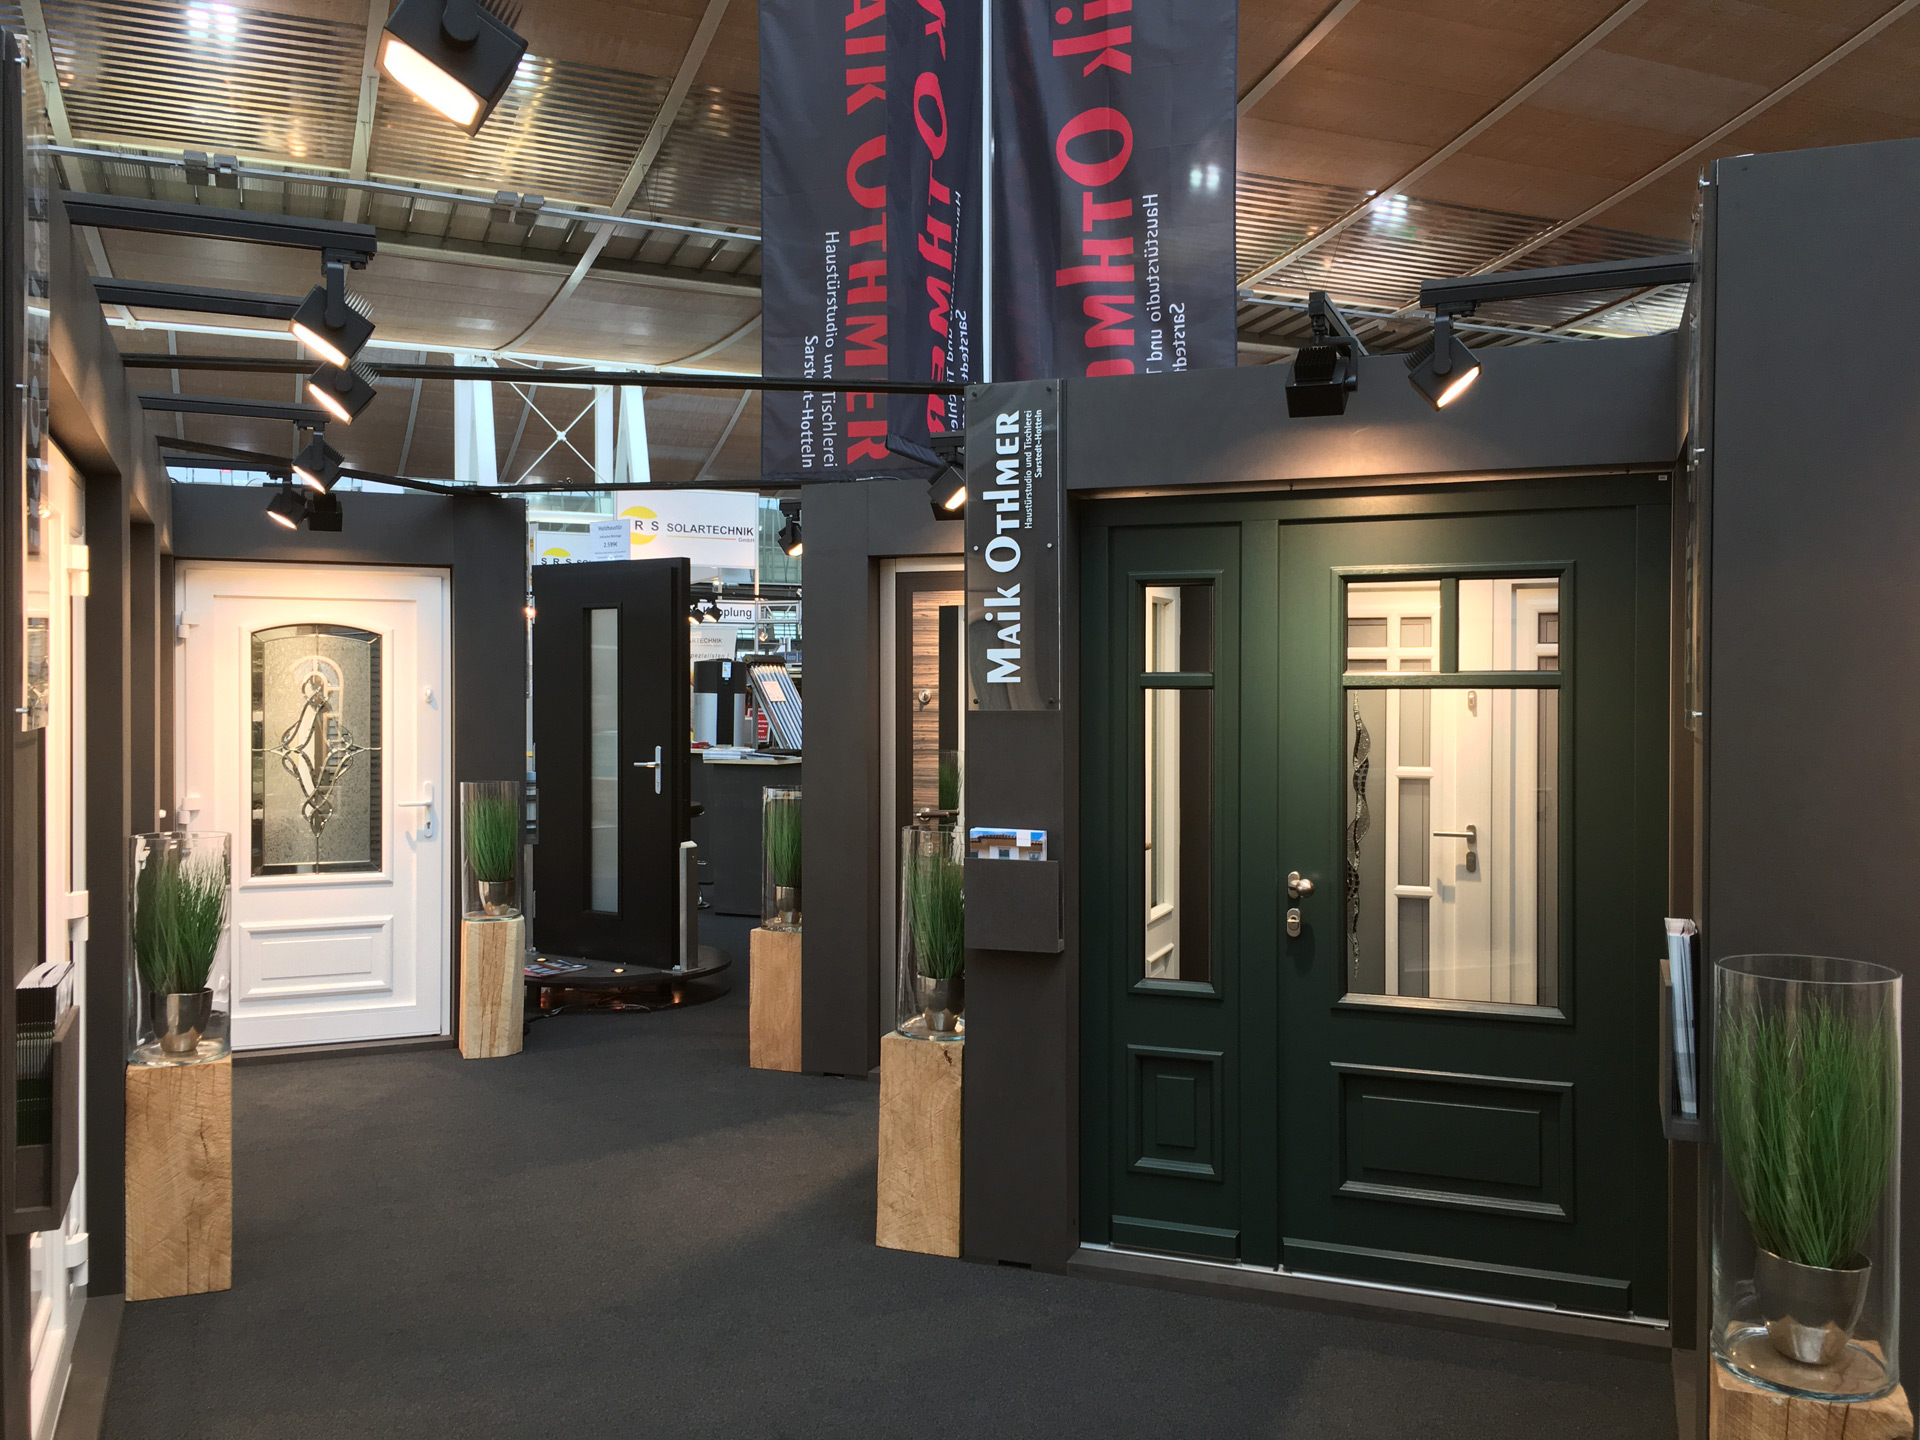 messe b i g in hannover 2017 peine fenster fenster und t ren zum tr umen. Black Bedroom Furniture Sets. Home Design Ideas